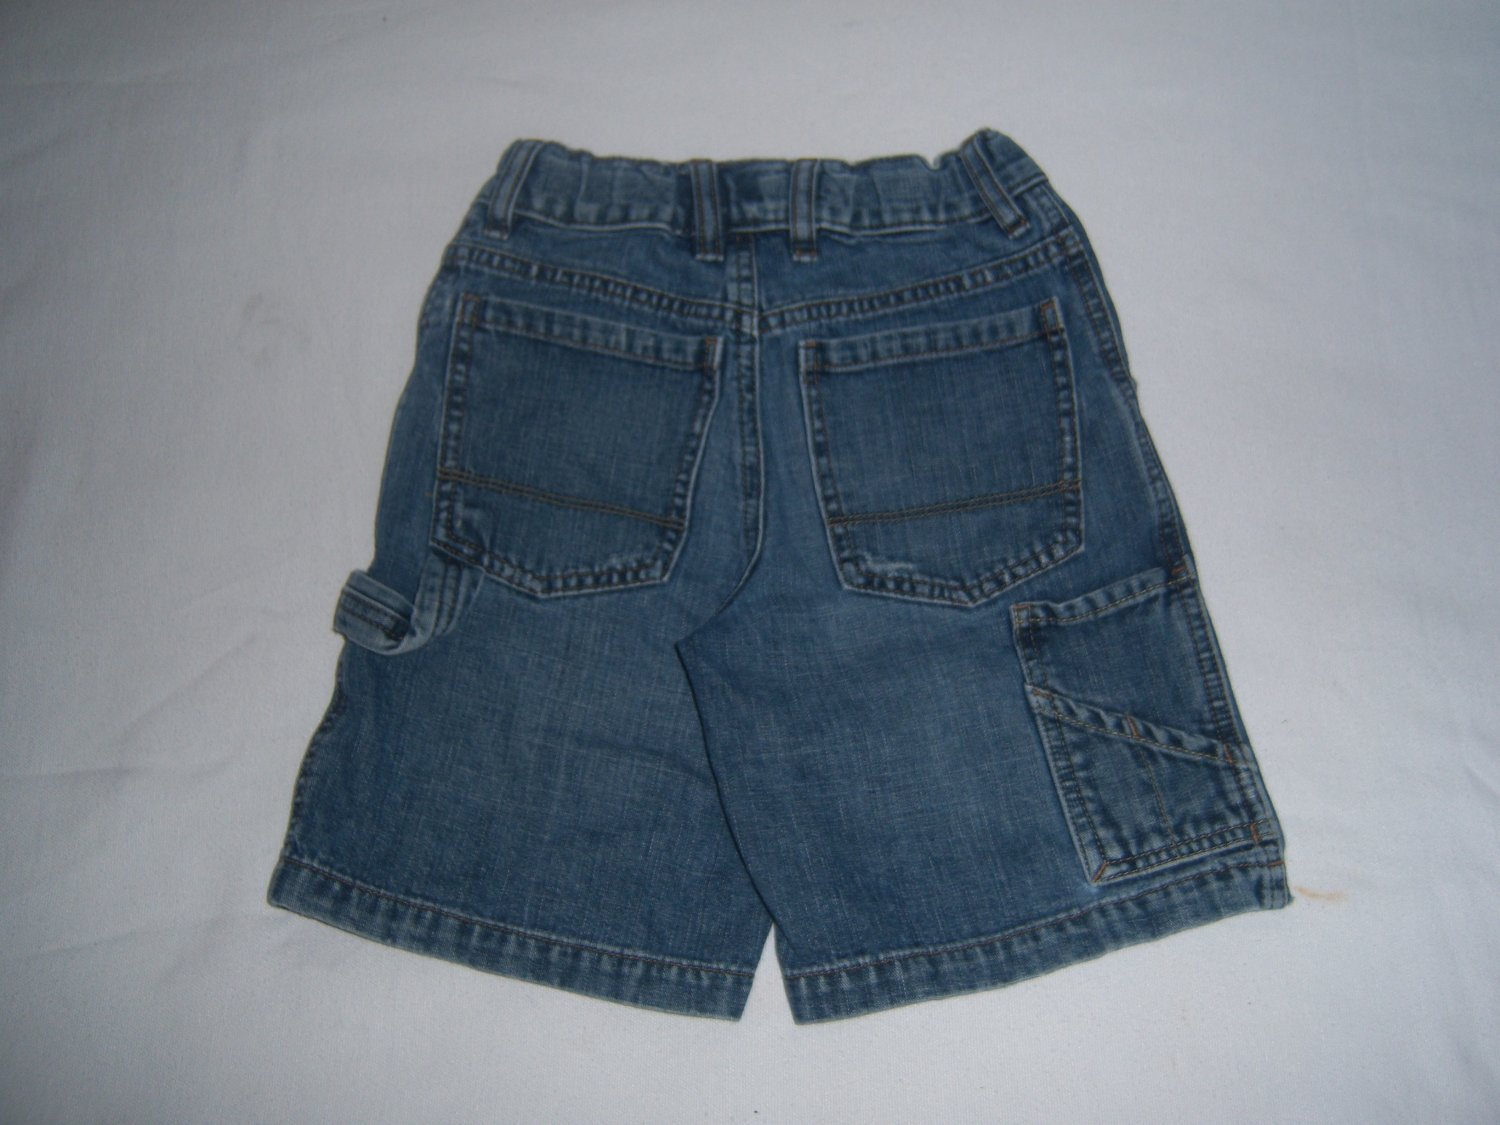 Old Navy Little Boy's Denim Jean Shorts Size 5